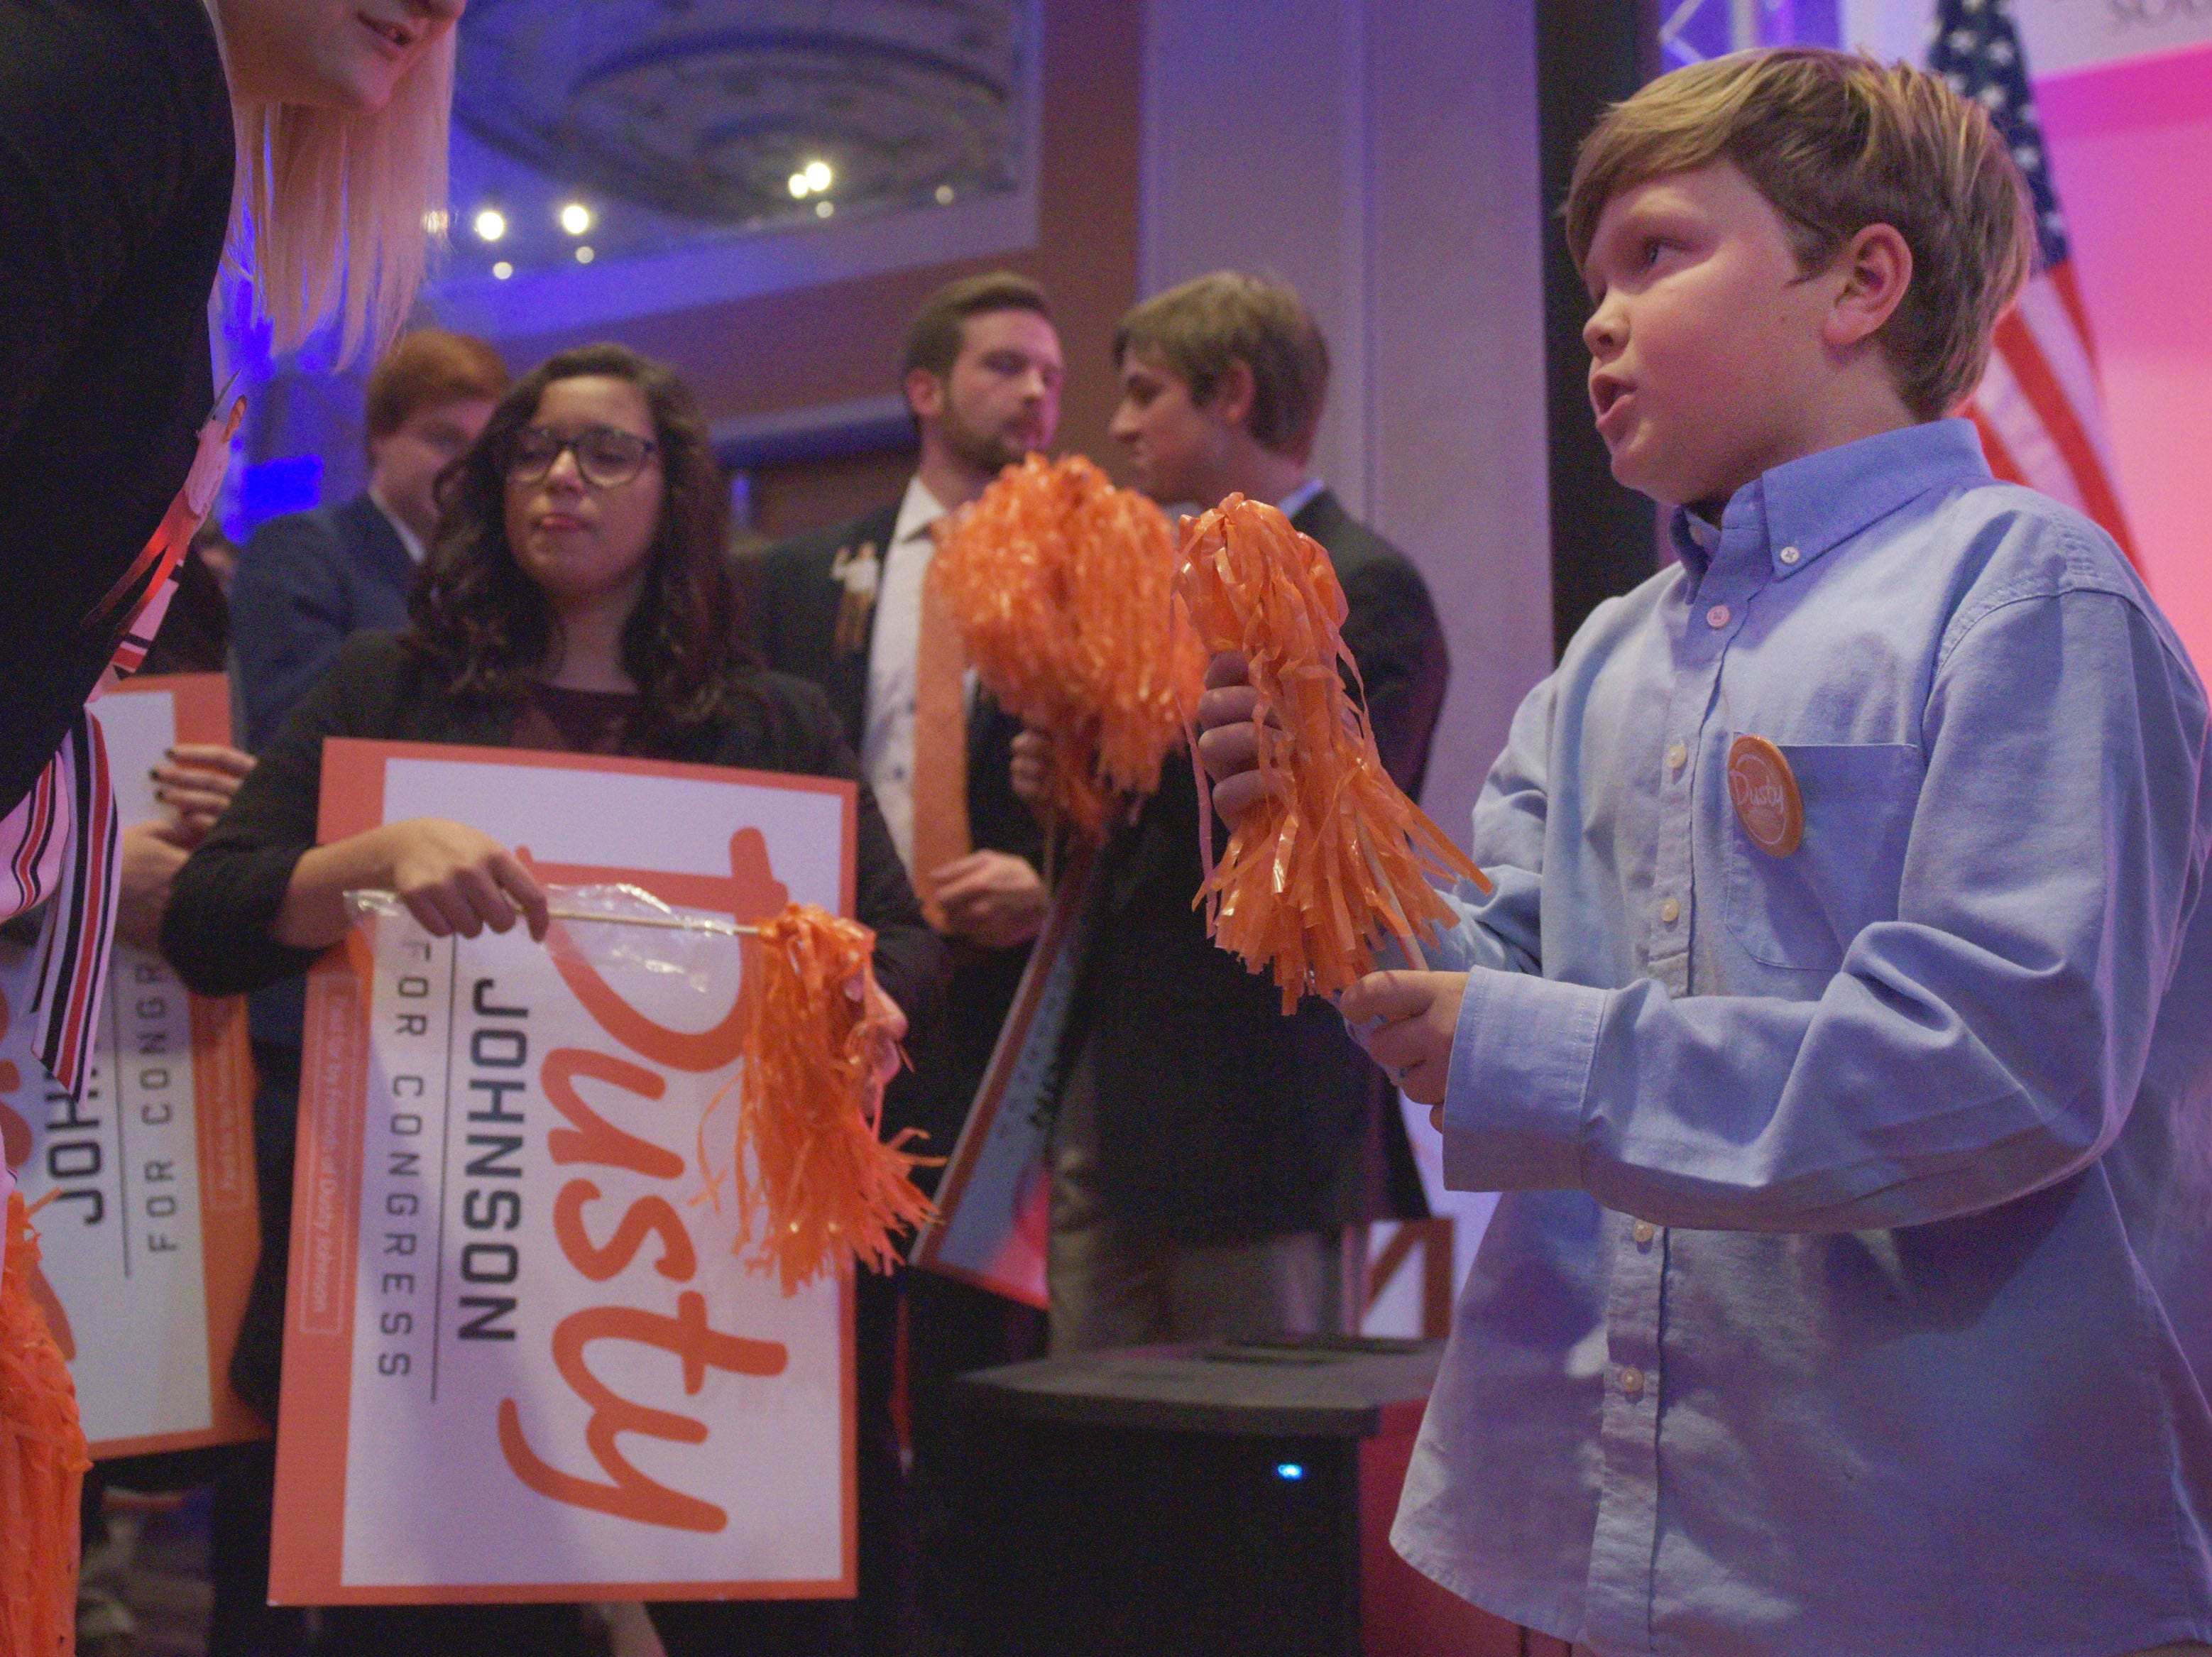 Dusty Johnson's nephew Foster Young runs up to grab a pompom before Johnson speaks to supporters after winning South Dakota's lone U.S. House seat after results are announced Tuesday, Nov. 6, at the Hilton Garden Inn in Sioux Falls.